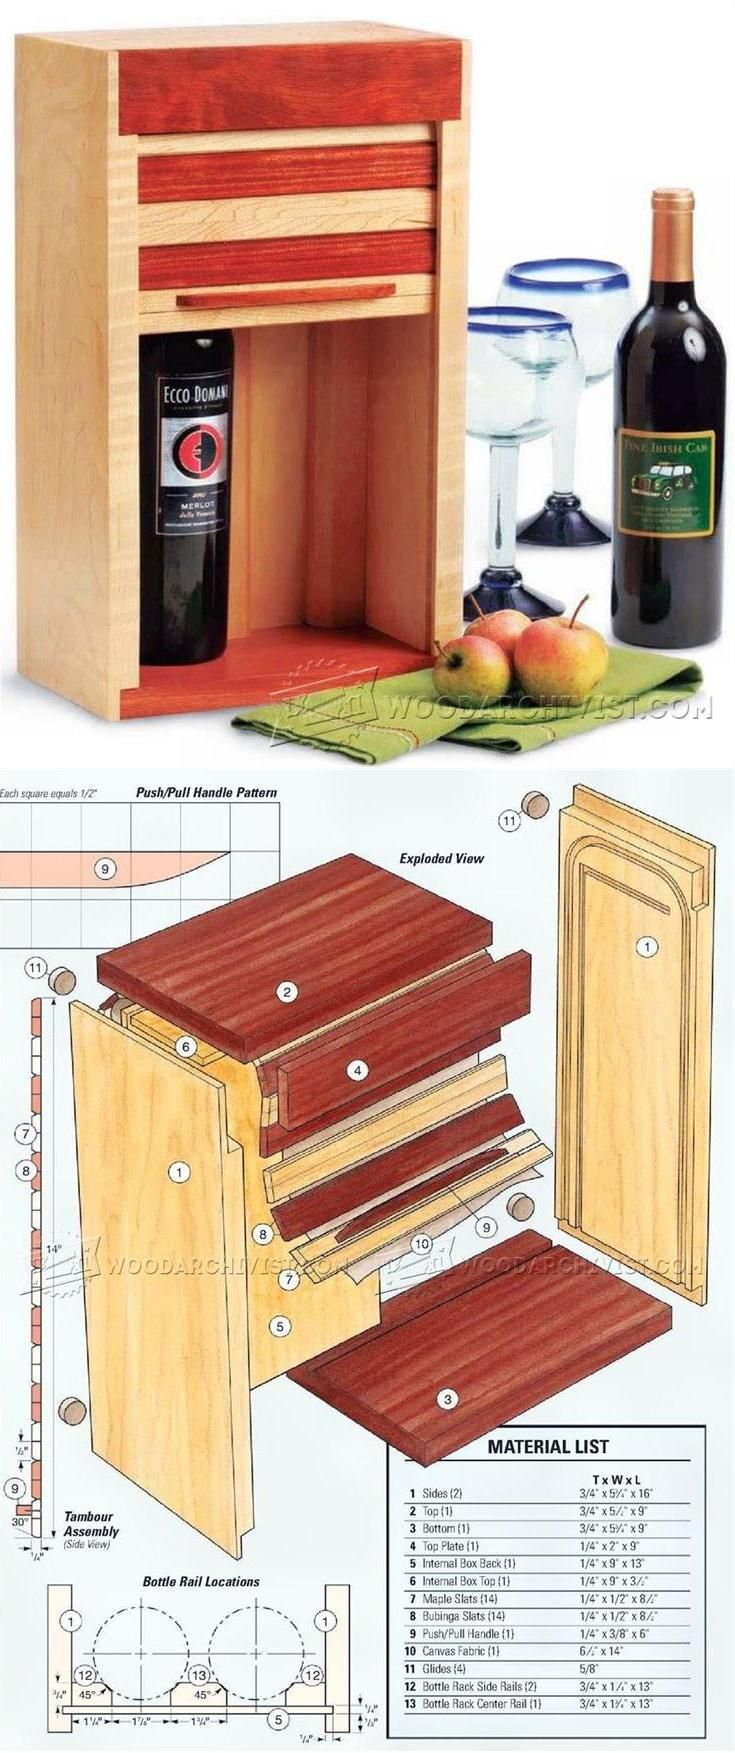 Wine Gift Box Plans Woodworking Plans And Projects Woodarchivist Com Simple Woodworking Plans Woodworking Projects Plans Woodworking Projects Diy